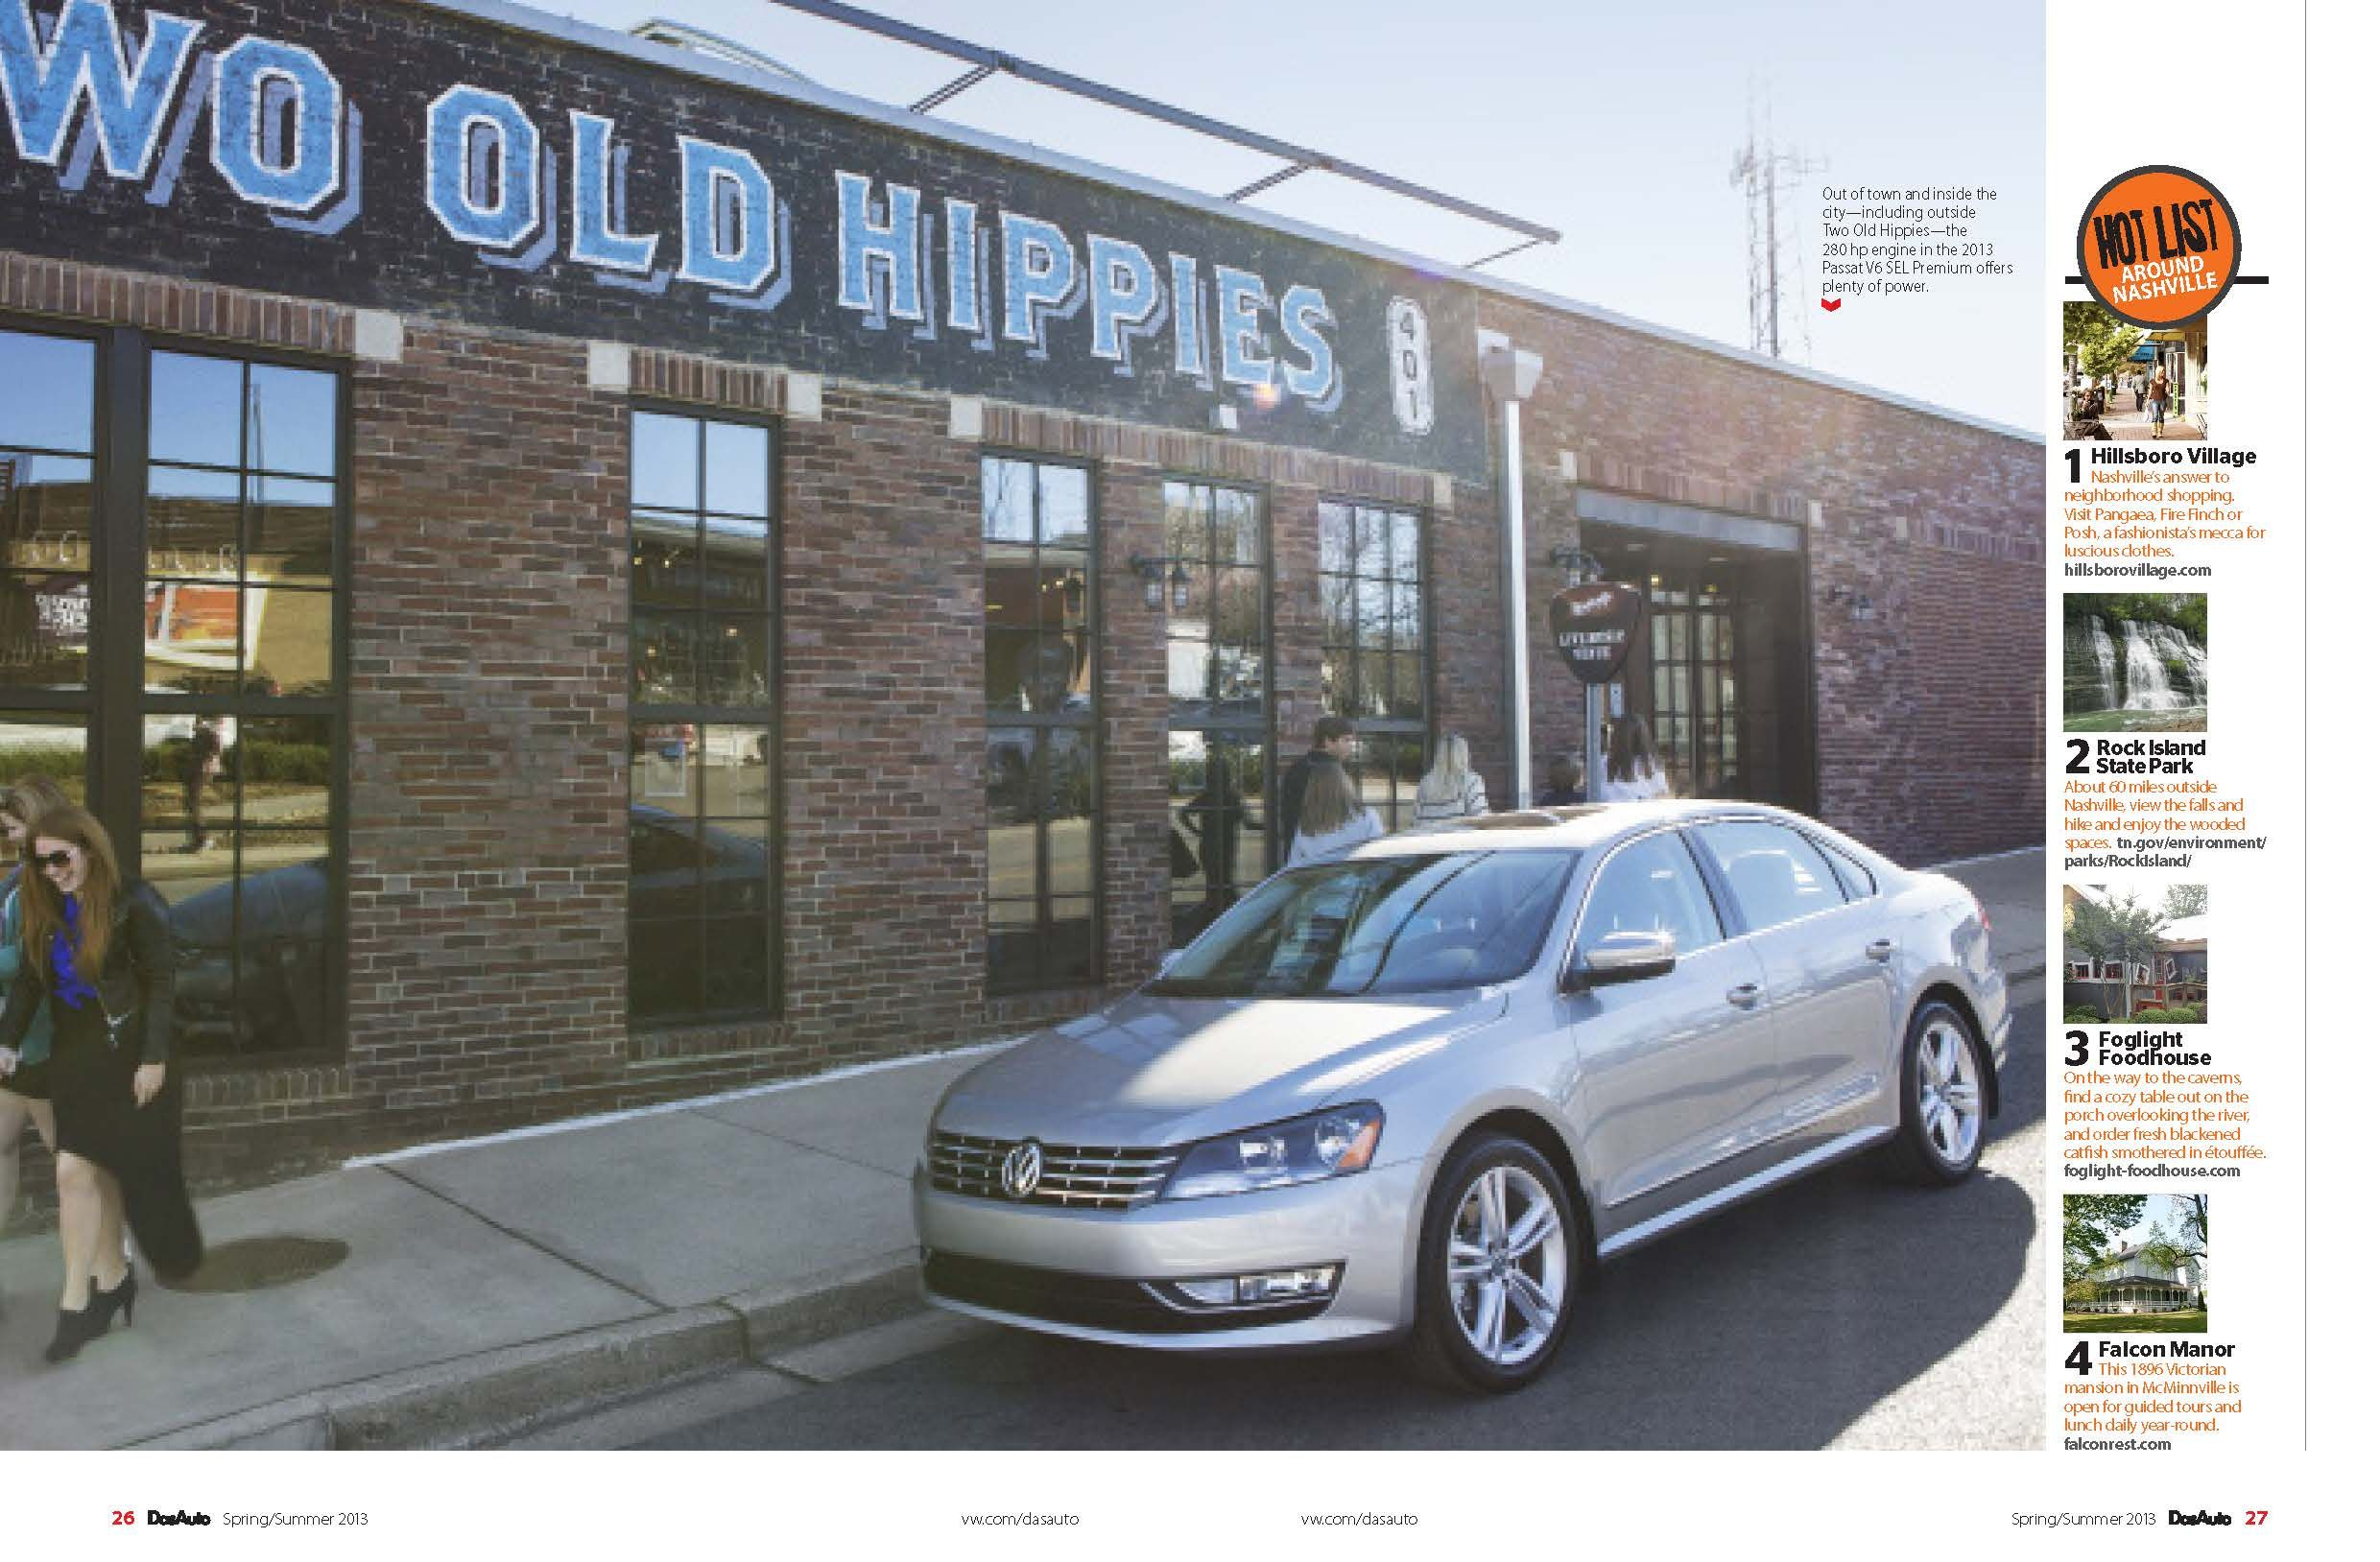 Two Old Hippies in Das Auto's Greener Nashville issue! www.twooldhippies.com 615-254-7999